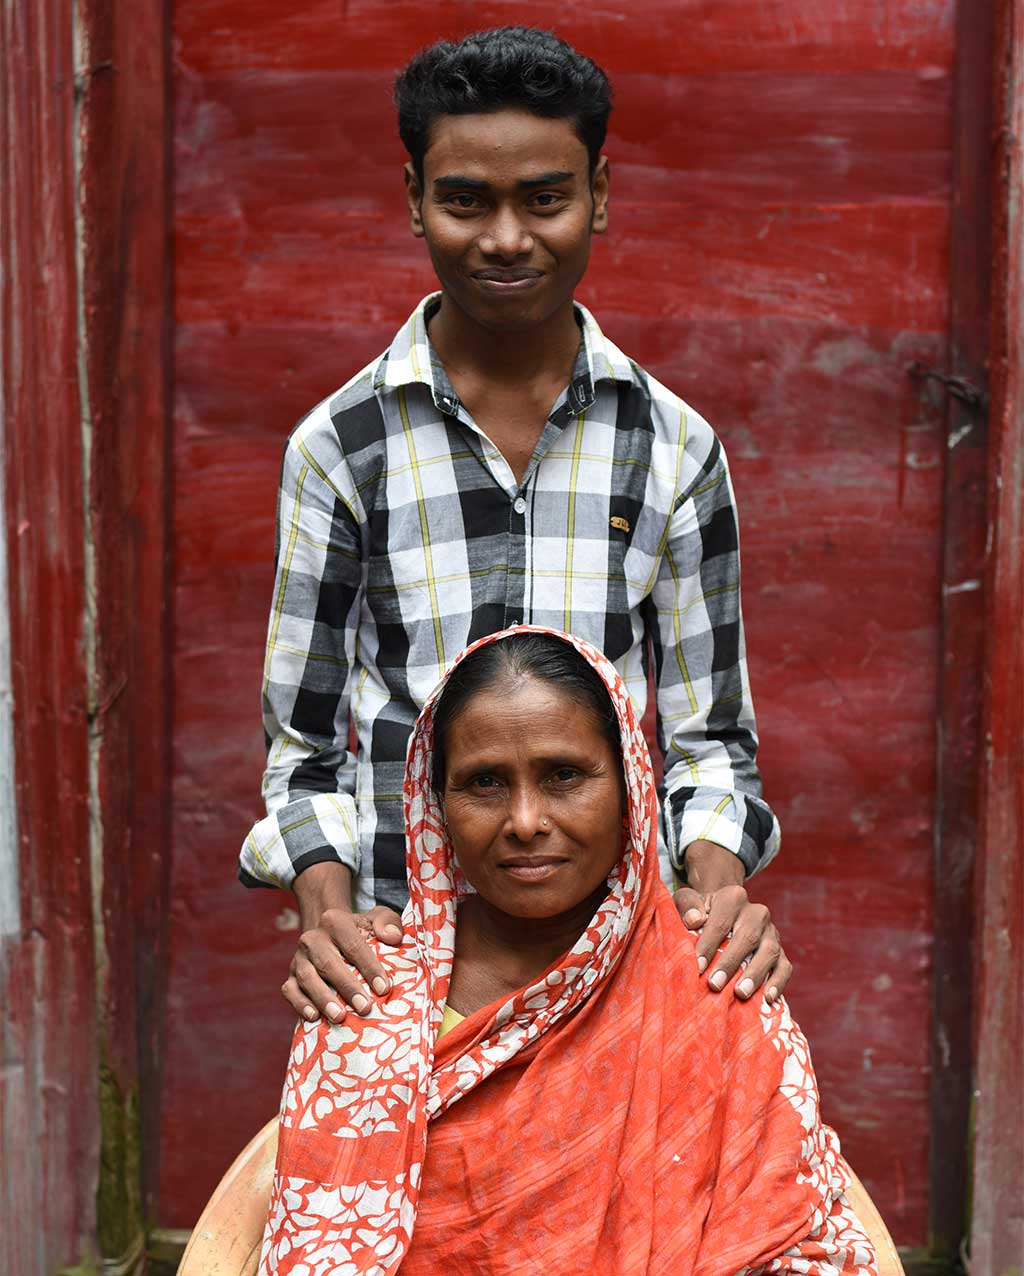 Mother and son in Bangladesh